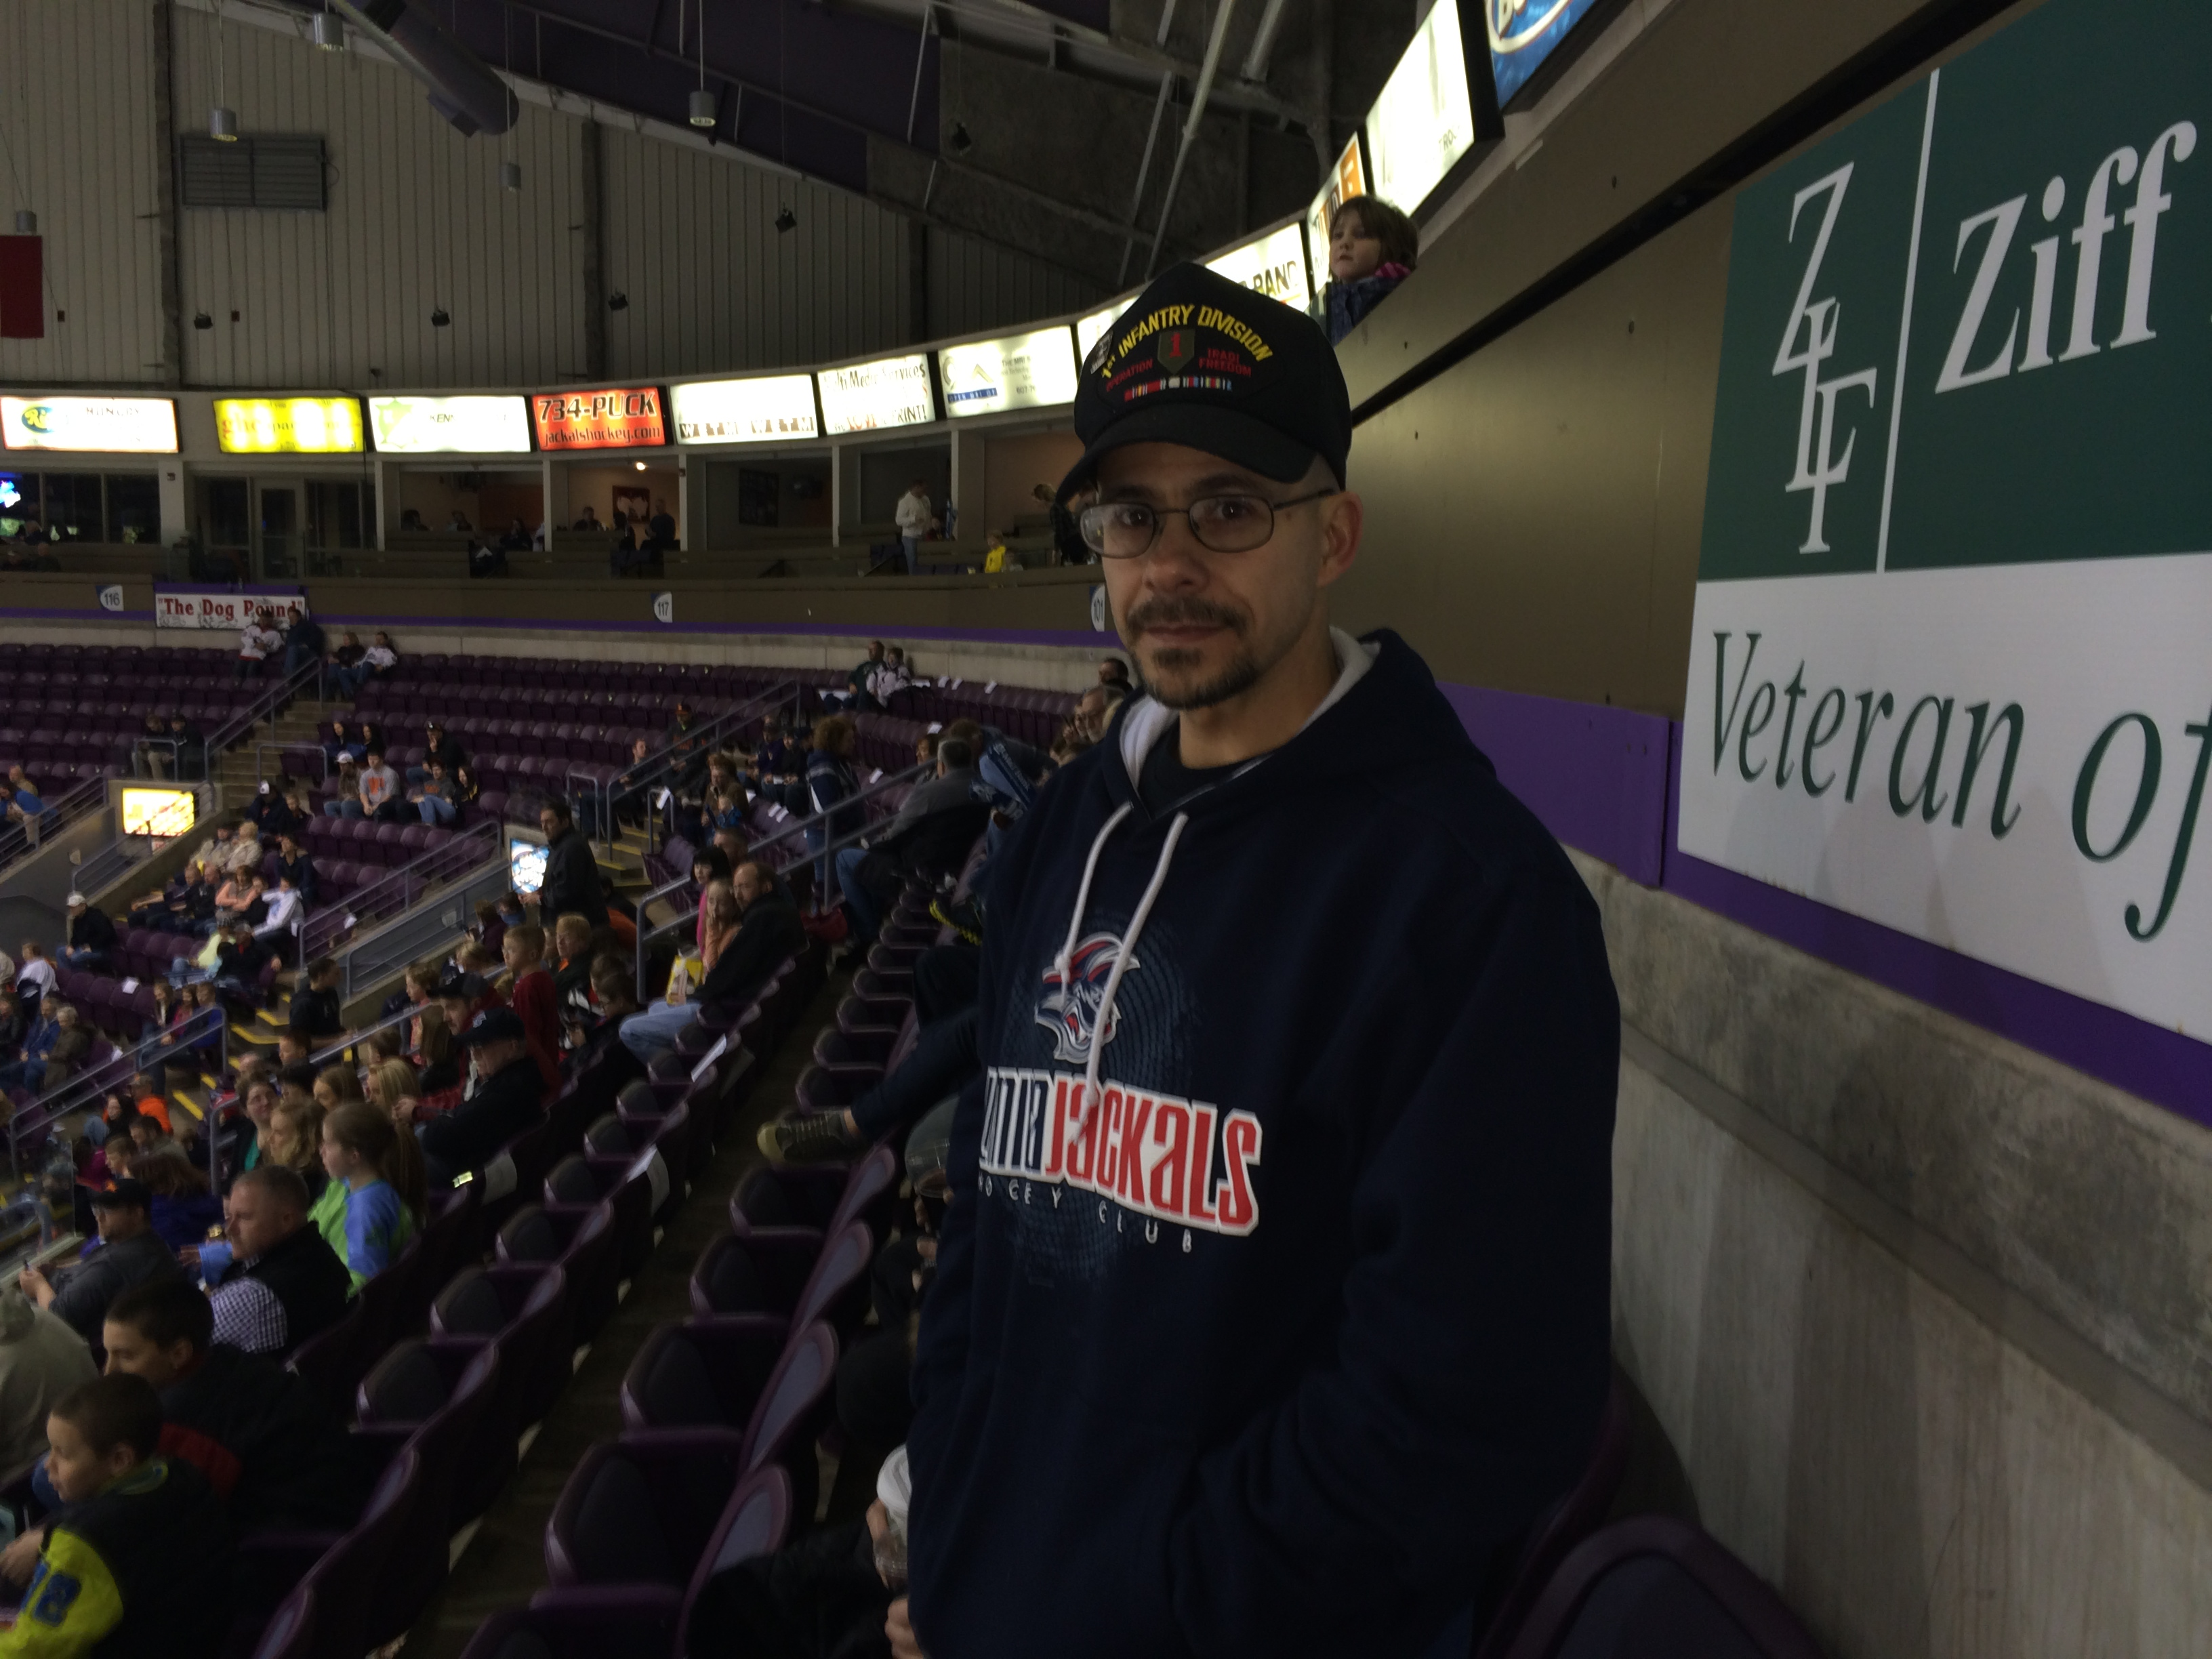 Army veteran Scott Swanson was among the more than 200 veterans honored at First Arena in Elmira during eight seasons of Elmira Jackals games.